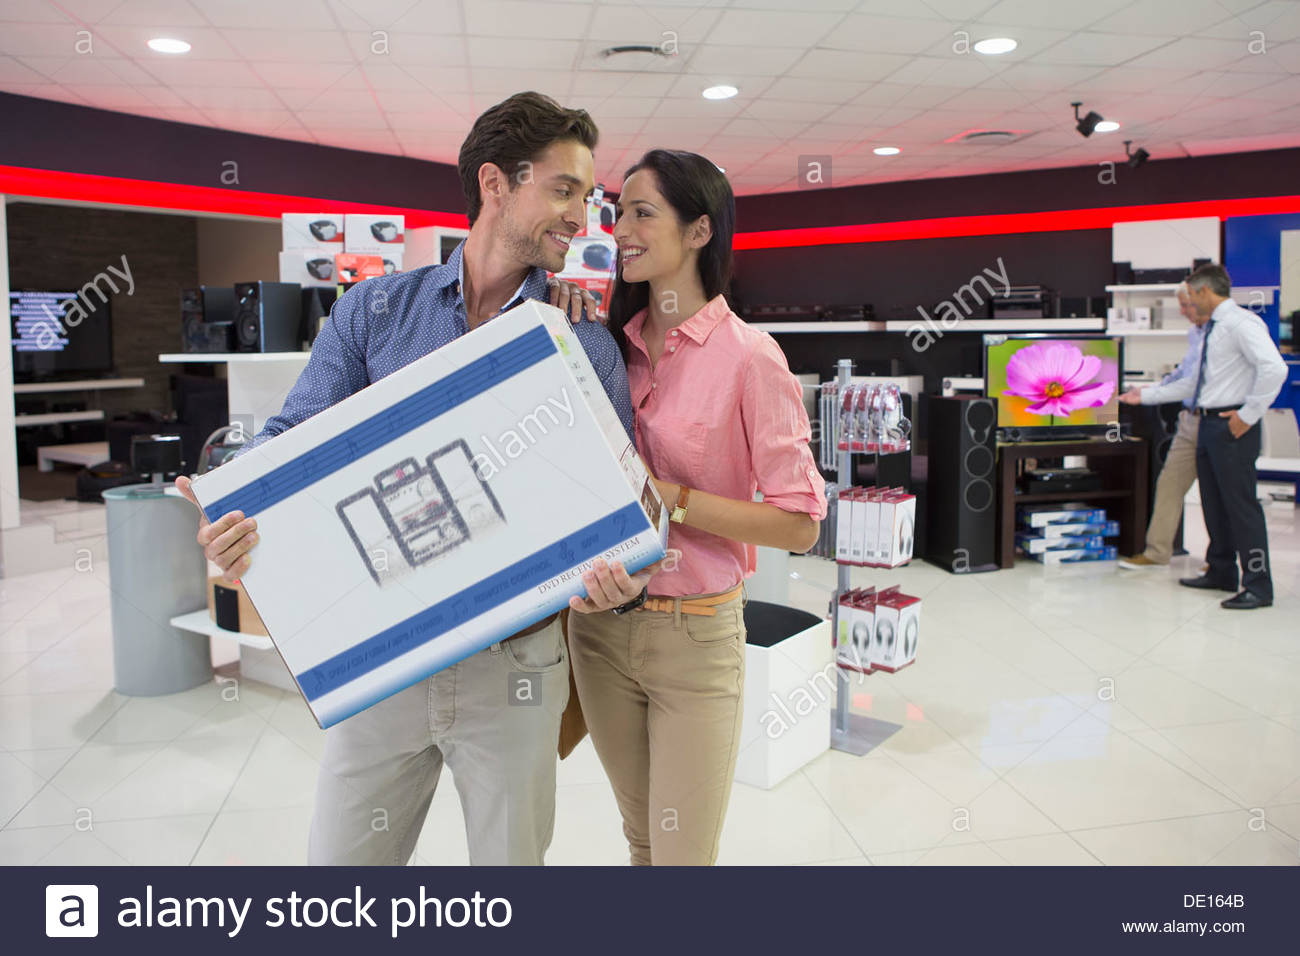 Smiling couple holding box in electronics store - Stock Image